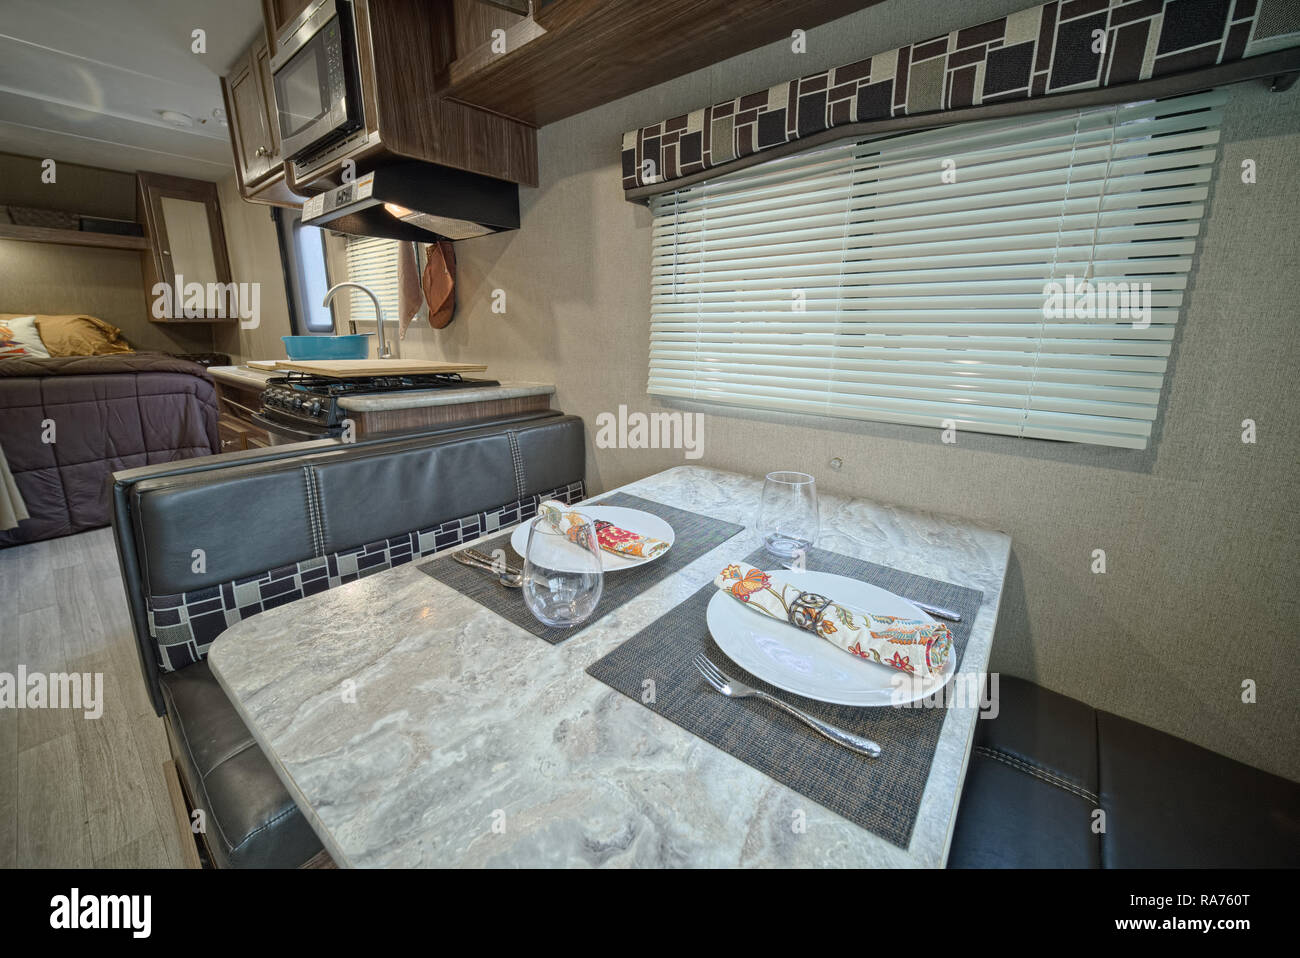 Set table inside RV travel trailer. Dining table in RV camper - Stock Image